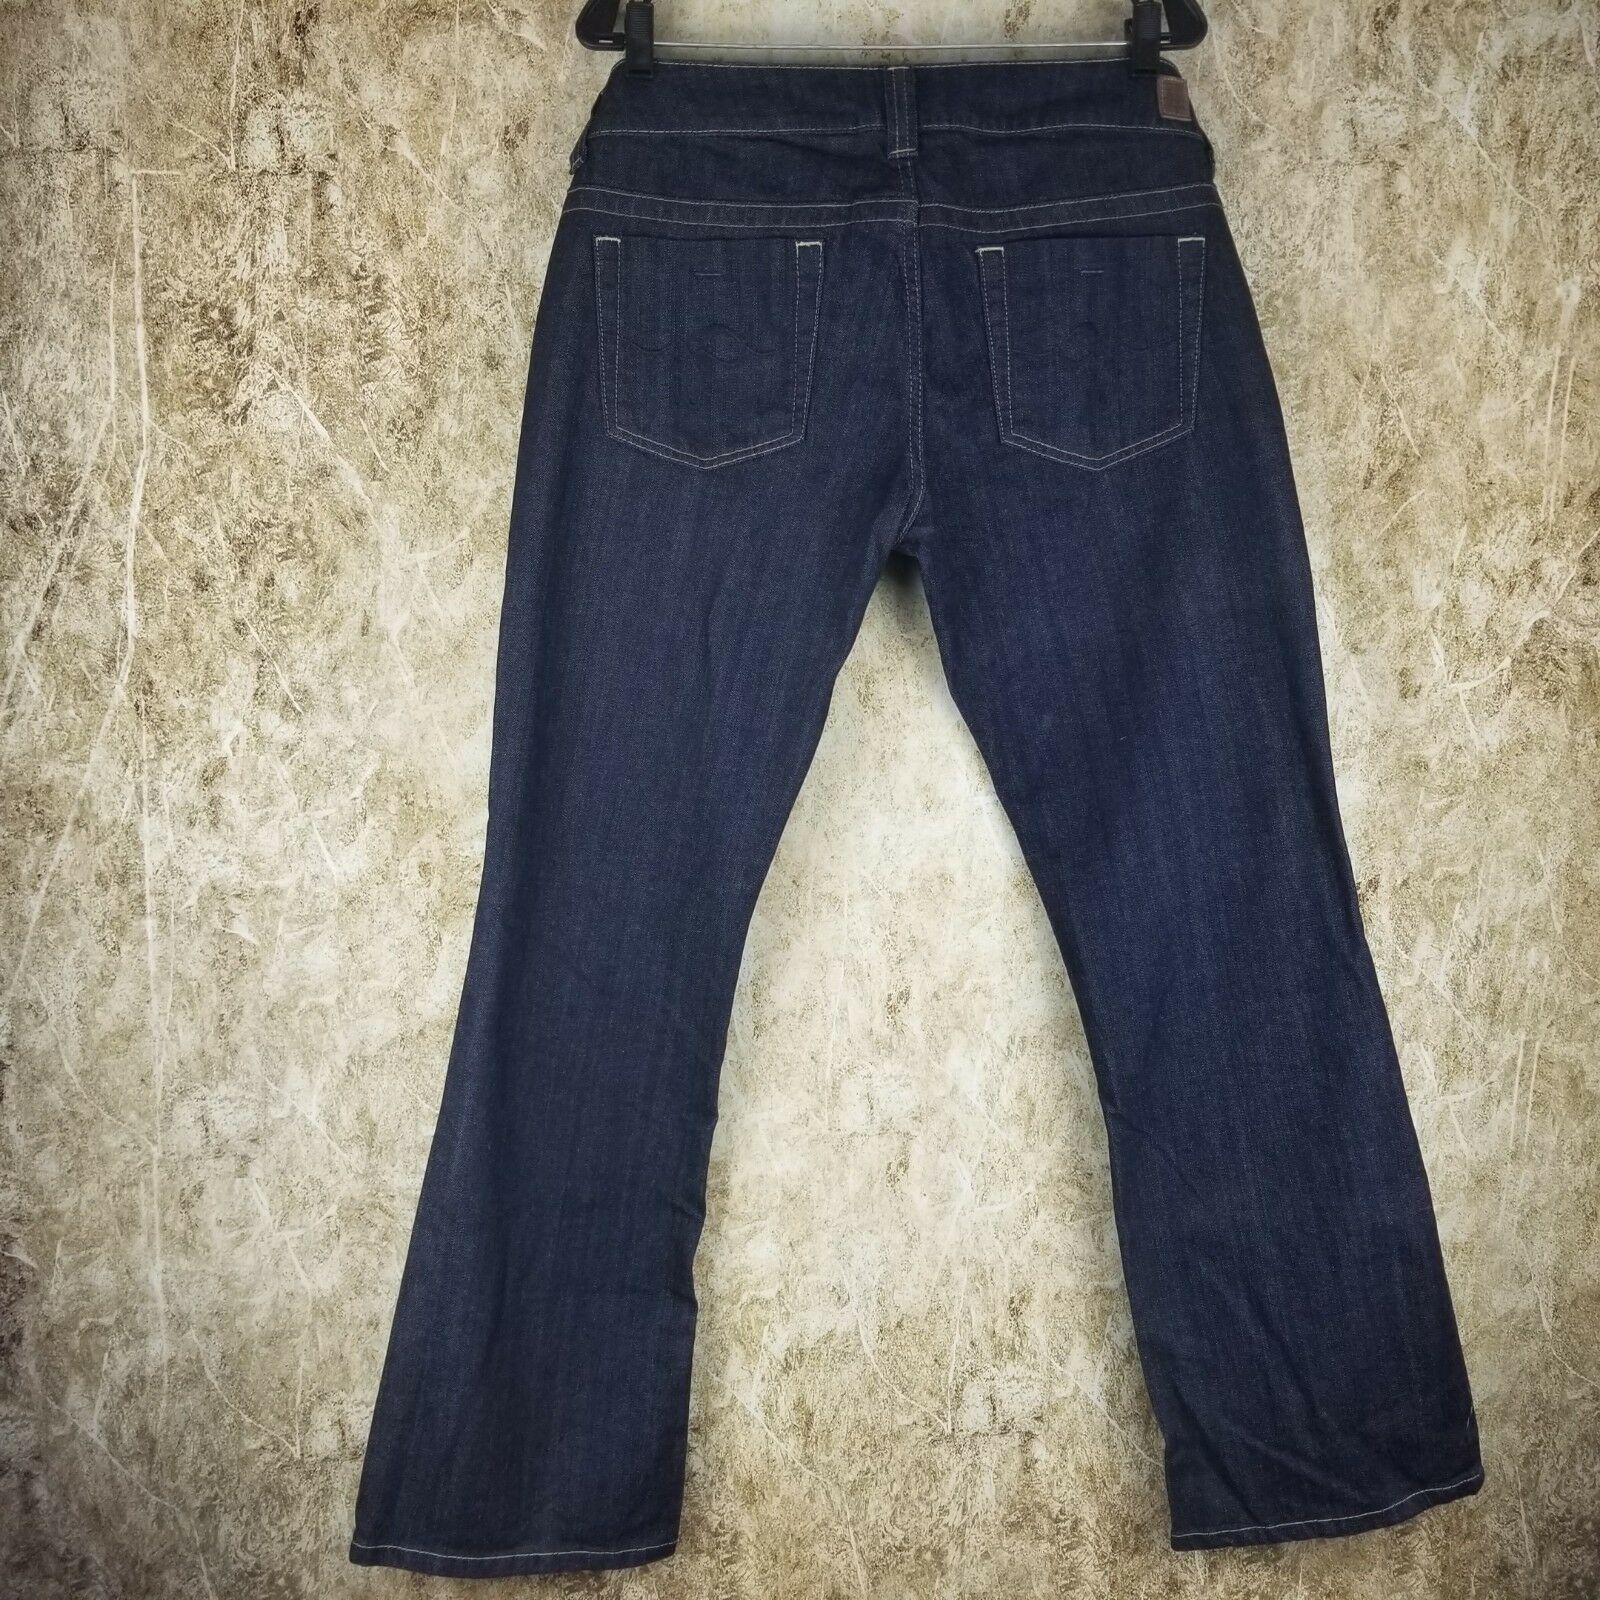 New w Tags Guess Daredevil 157 Low Rise Bootcut Stretch Jeans (Sz 32)